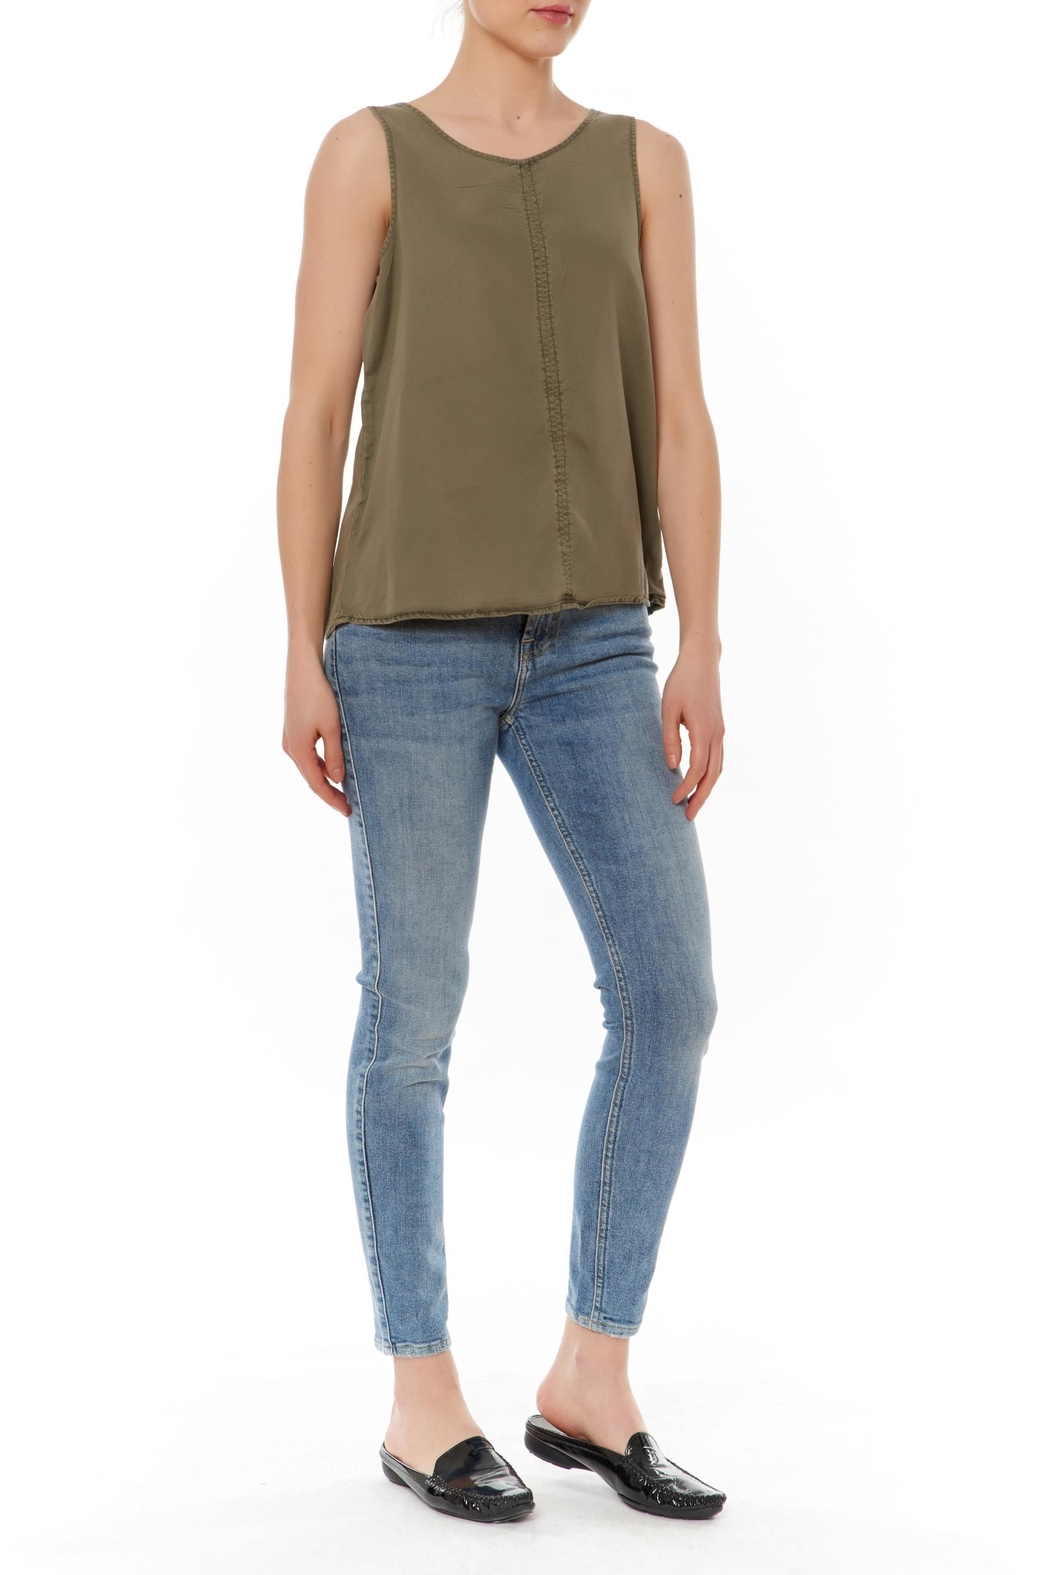 J HARPER Sleeveless Olive Top - Main Image